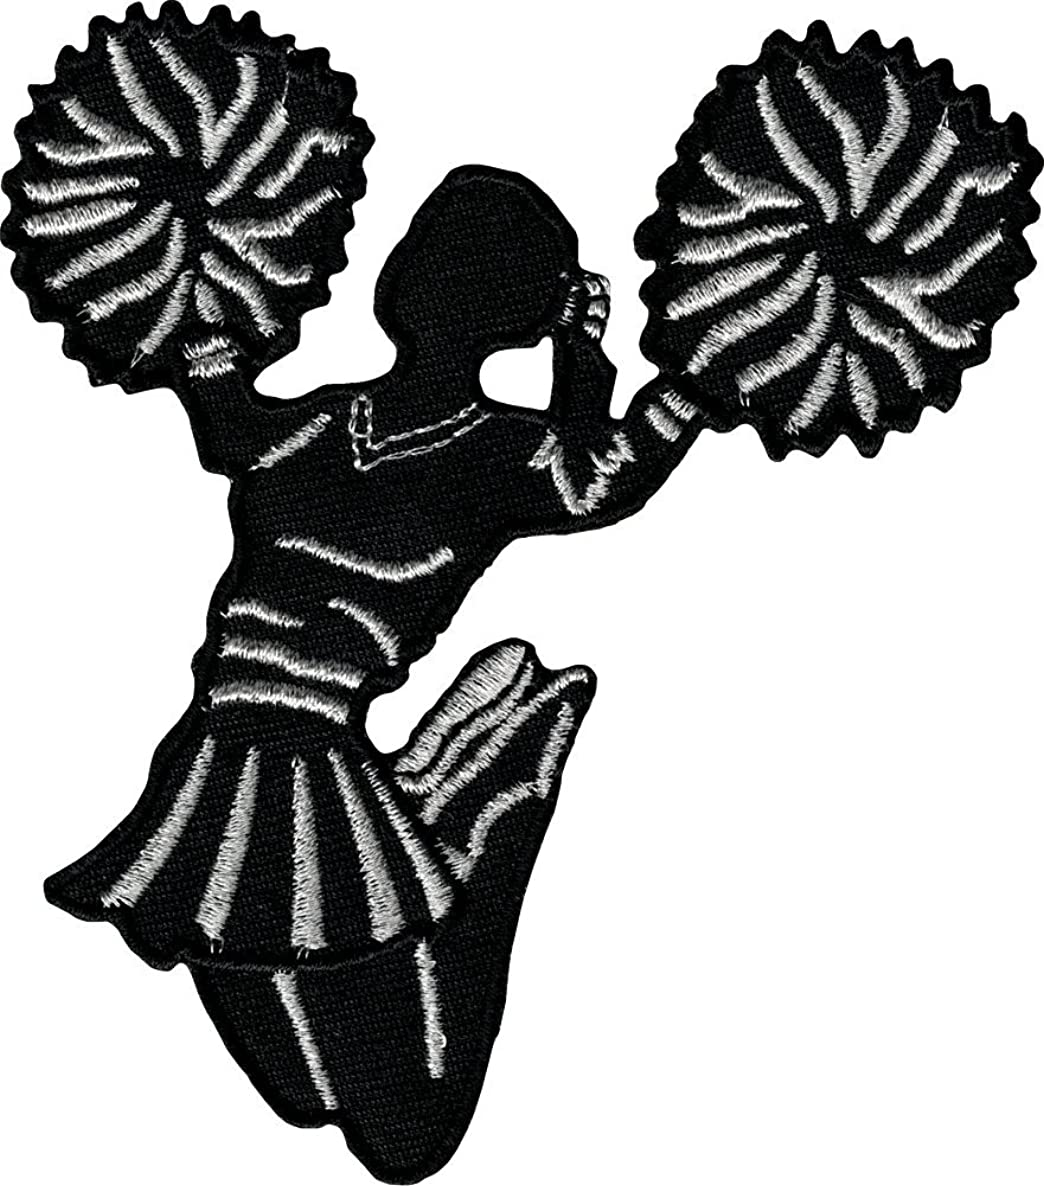 Jumping Cheerleader Silhouette Cutout - Holding Pom Poms with Silver Accents - Embroidered Iron On or Sew On Patch